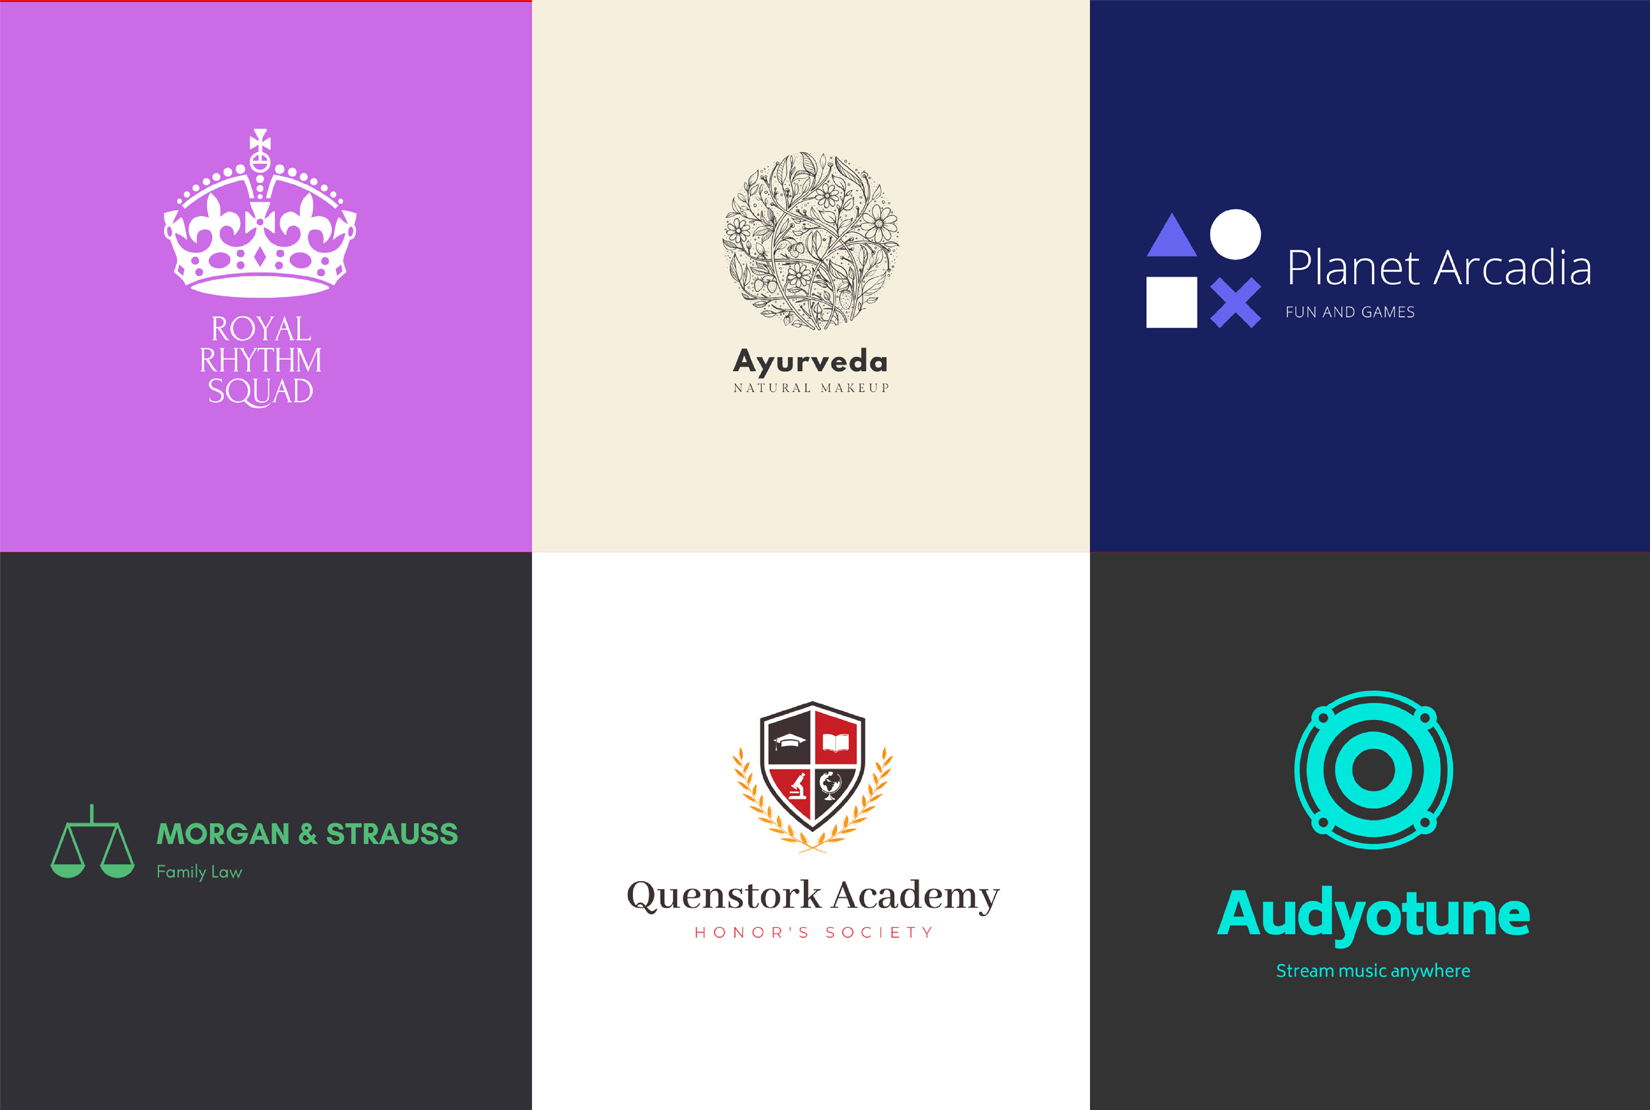 I will design 2 creative unique logos for your brand